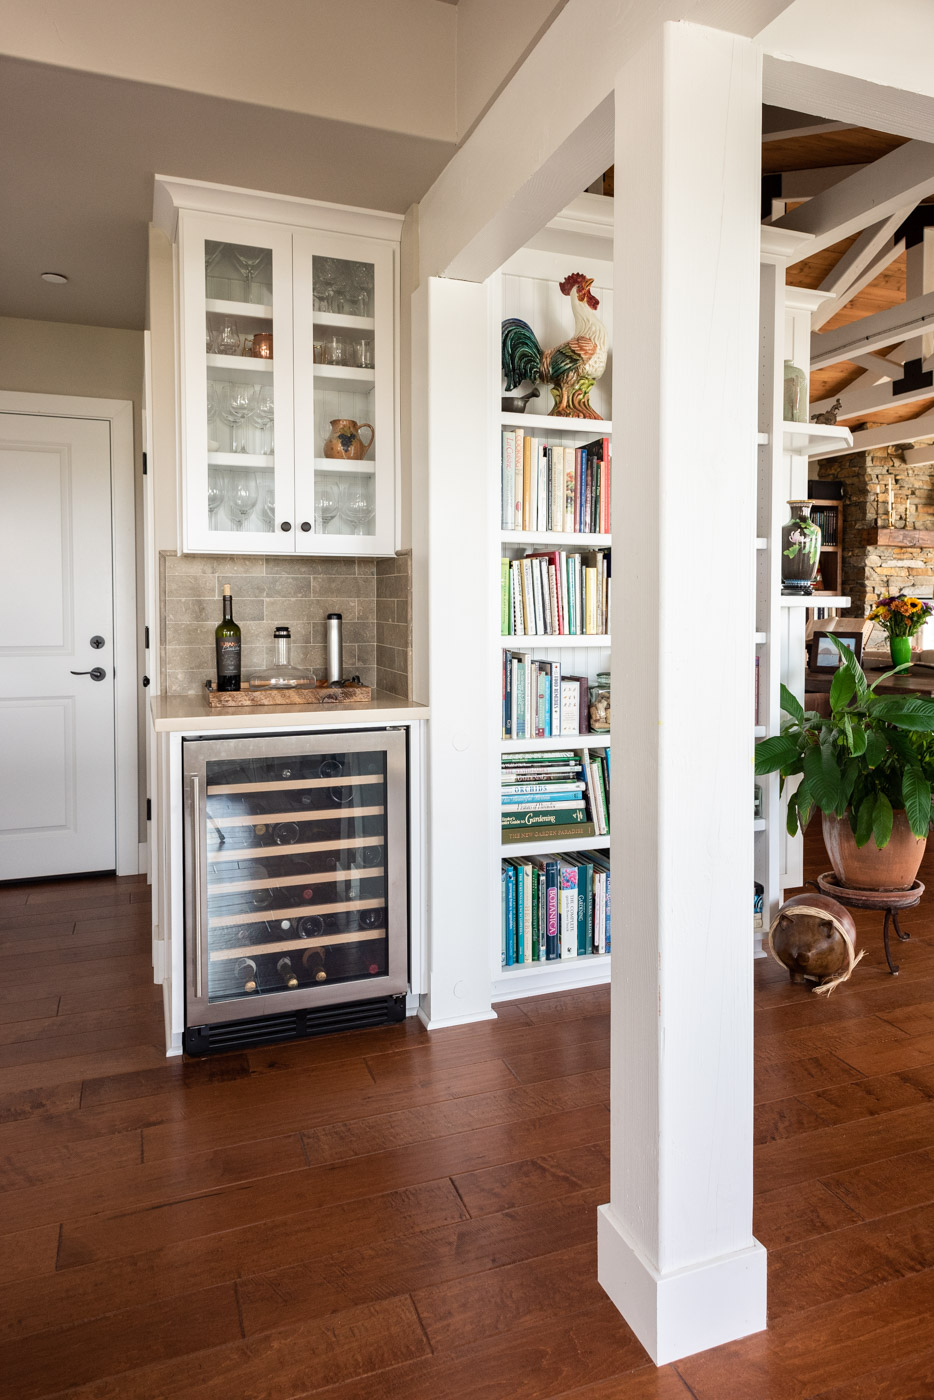 Coastal Craftsman kitchen with custom white painted shaker cabinets and home mini bar